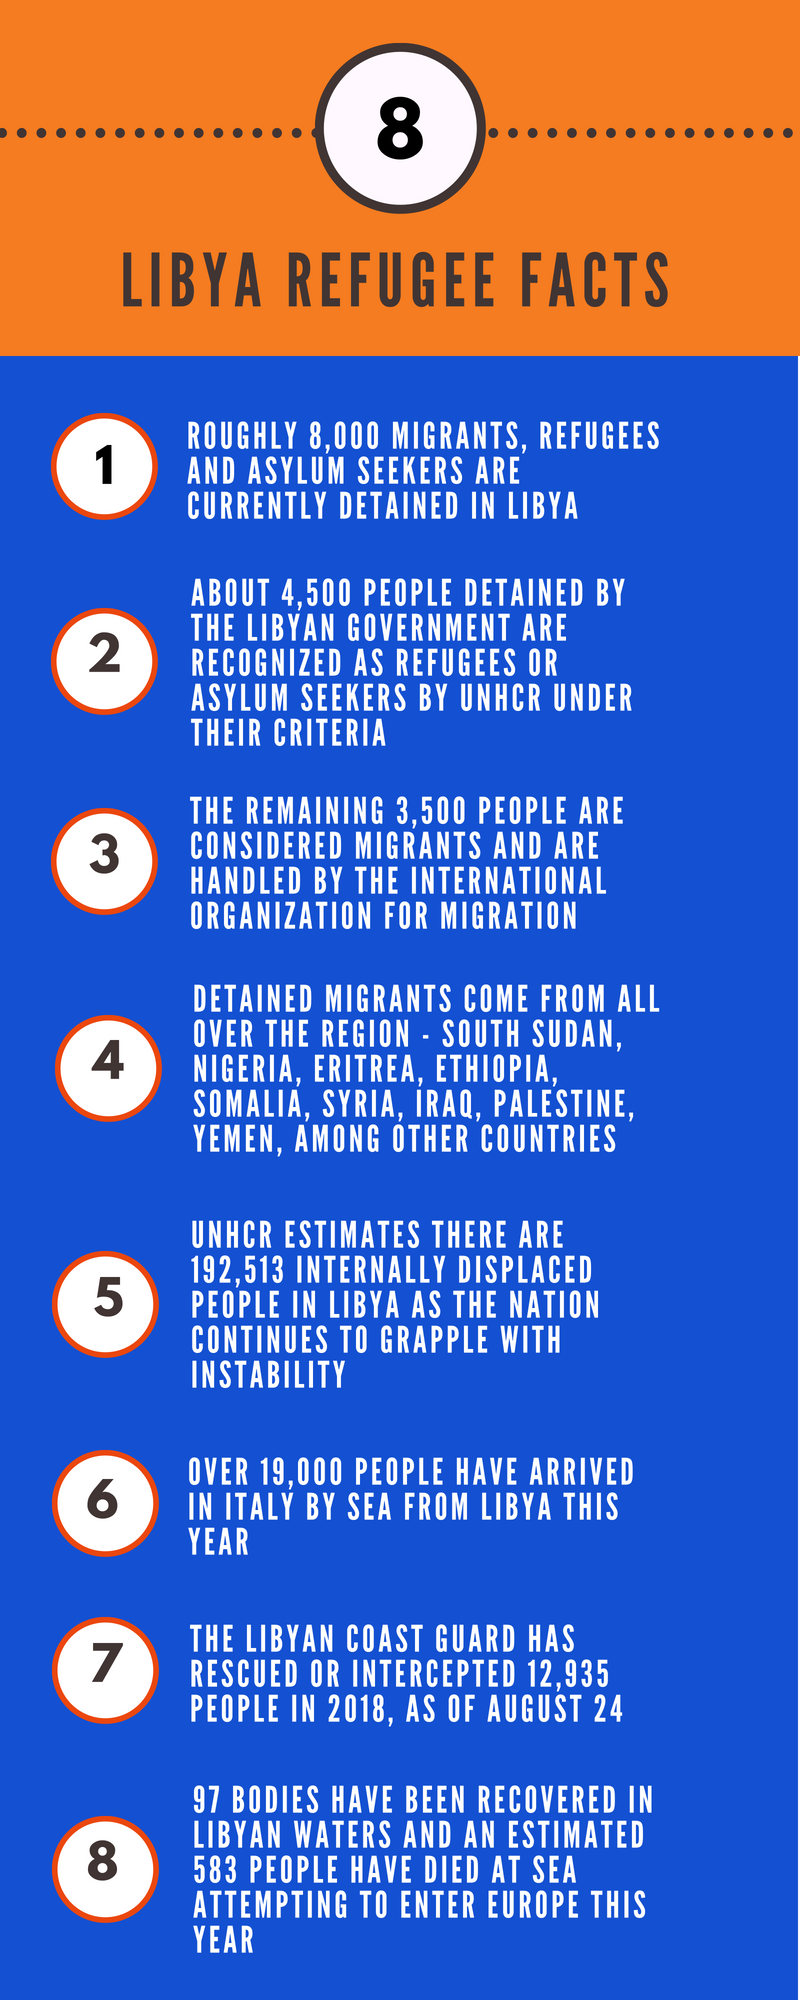 Libya Refugee Facts